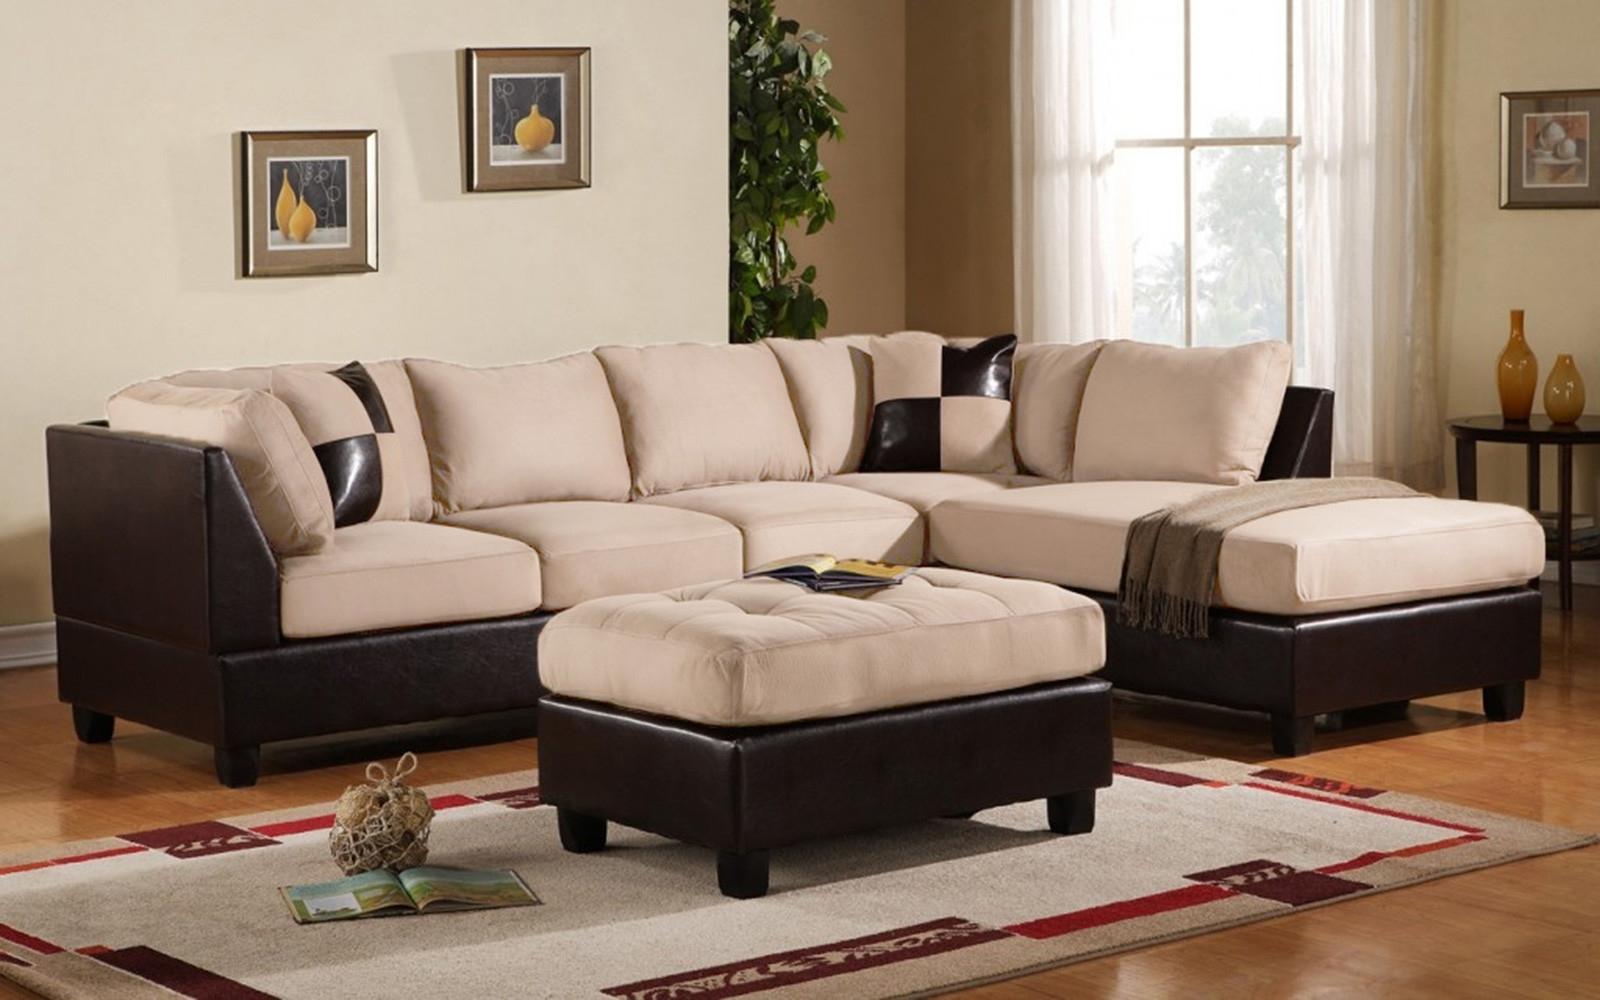 Best And Newest Faux Suede Sectional Sofa – Home And Textiles For Leather And Suede Sectional Sofas (View 20 of 20)